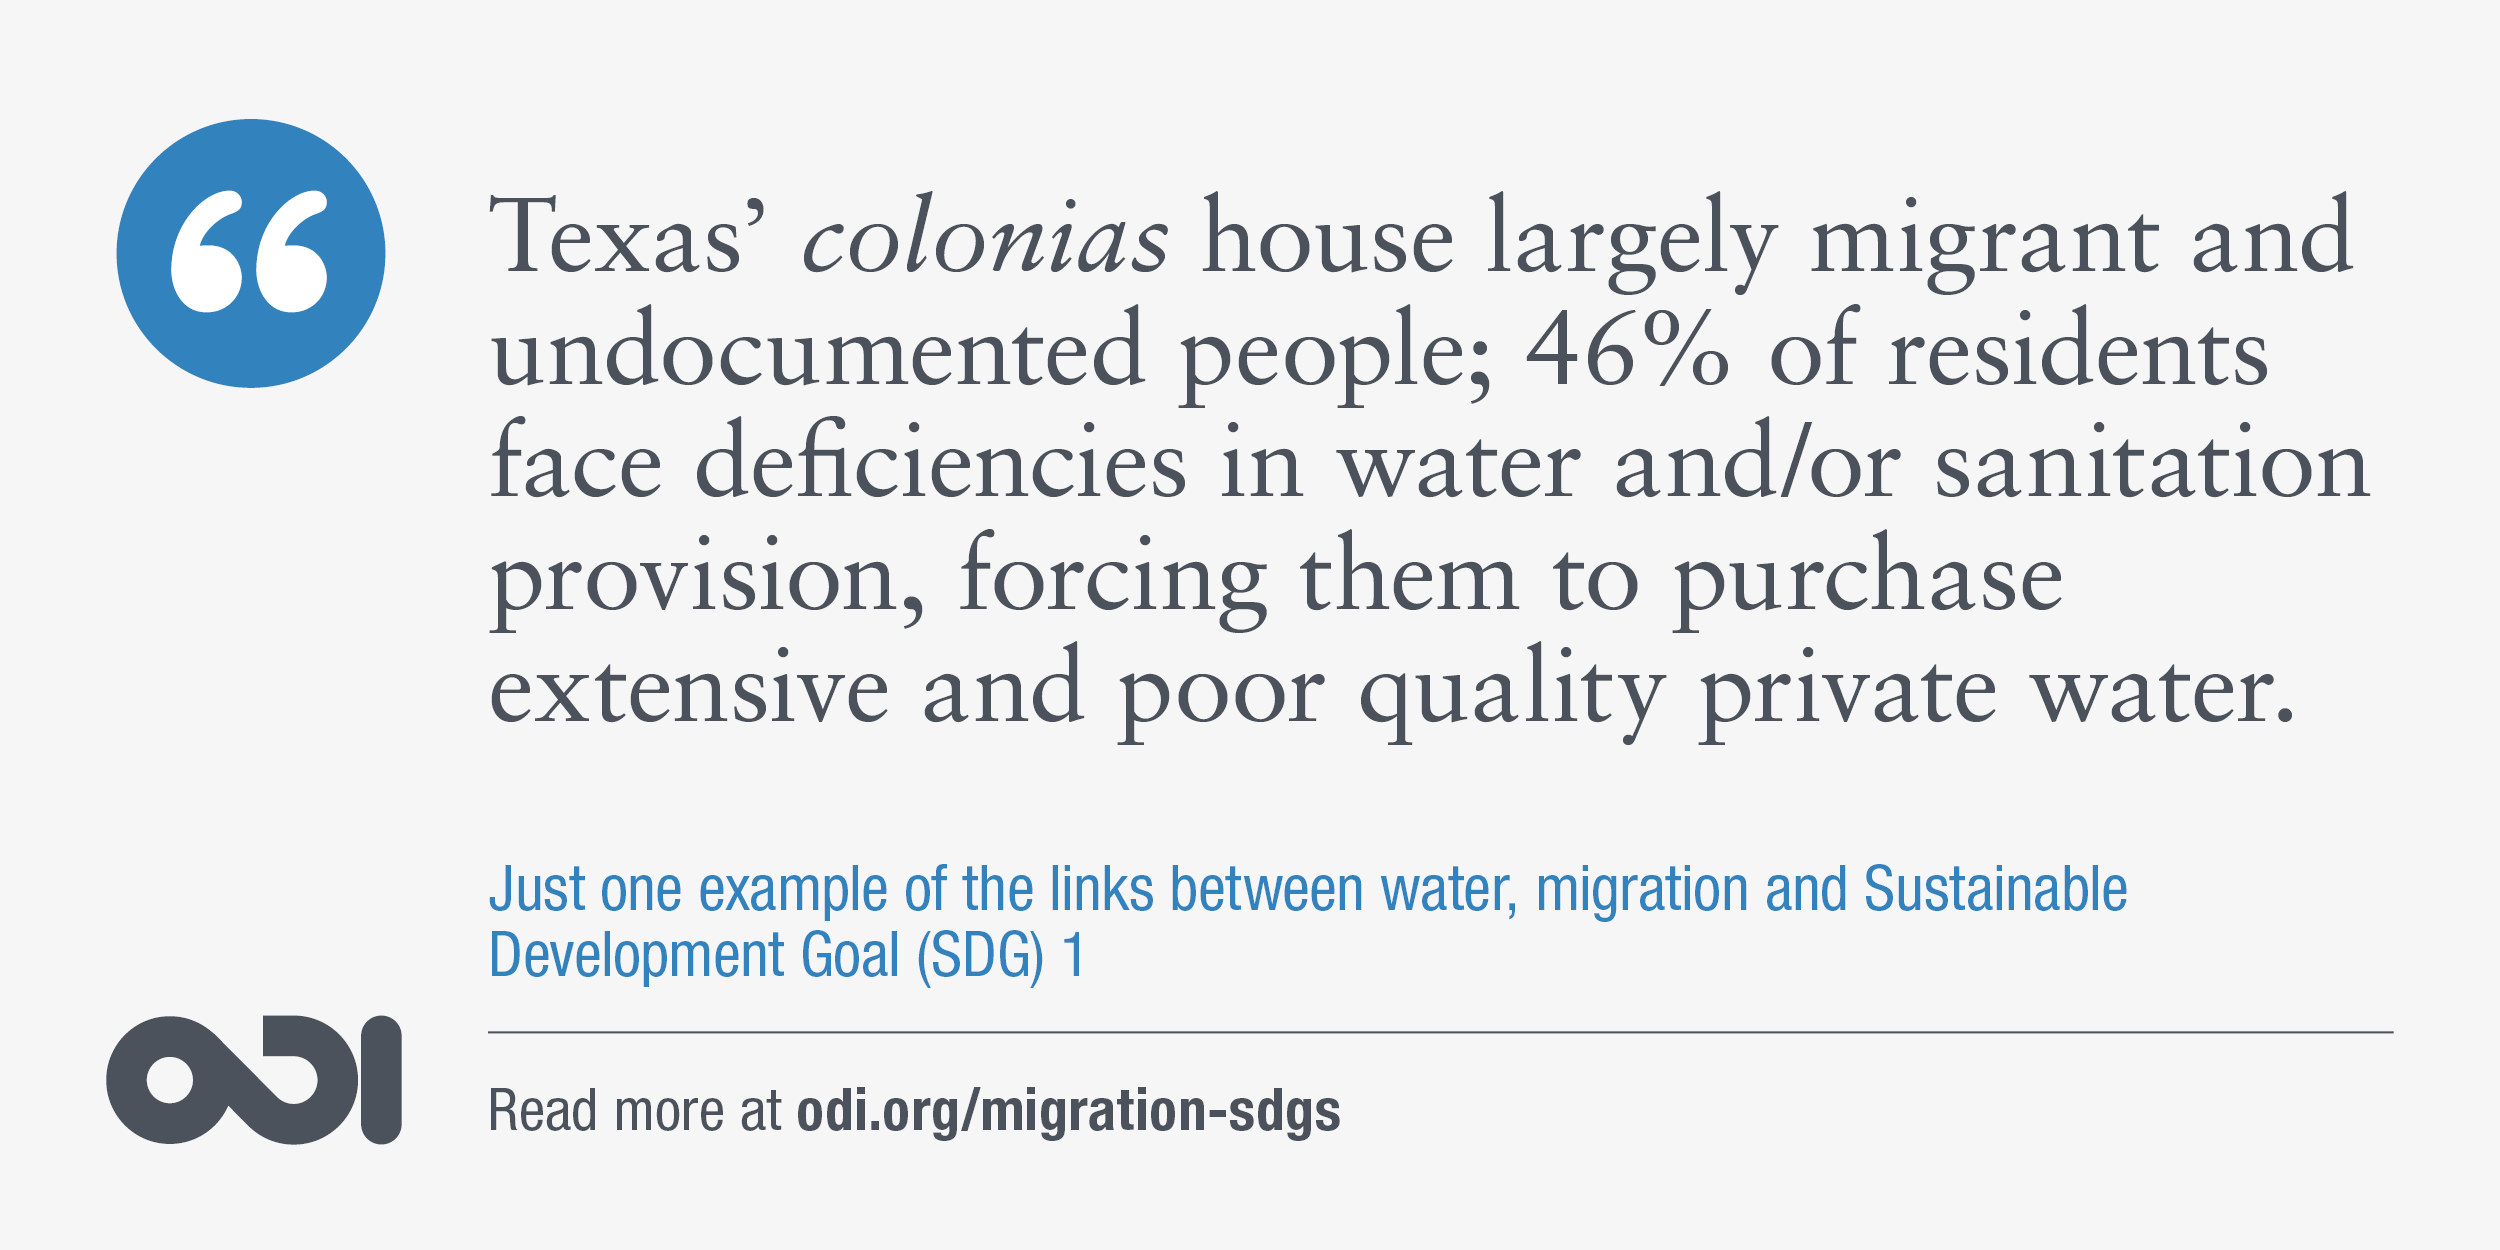 The links between water, migration and SDG 1.